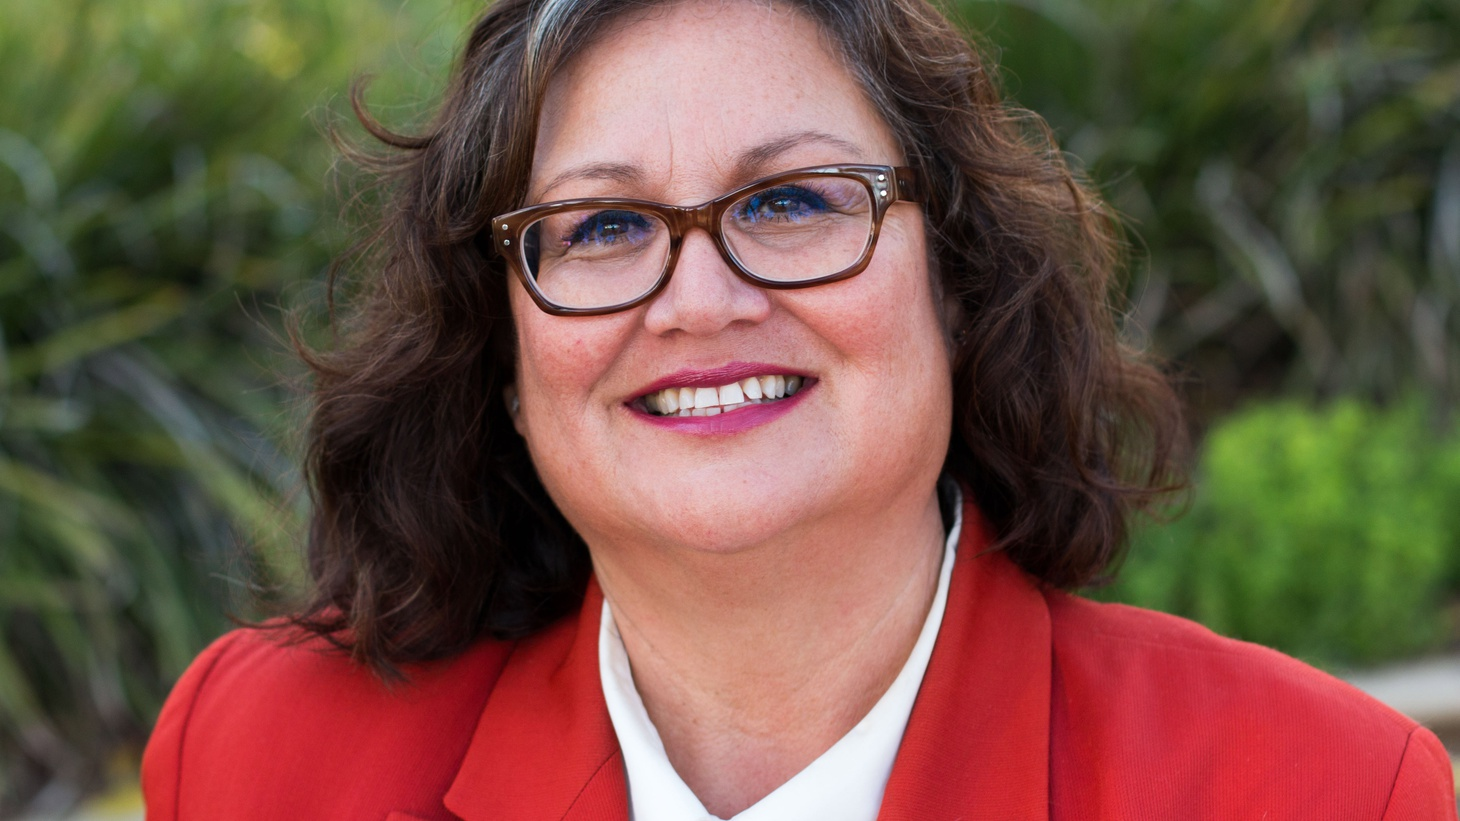 Voters in the city of Santa Barbara have elected their first Latina mayor. With a 50 percent voter turnout and five candidates in the ring, City Councilwoman Cathy Murillo won with less than 7,000 votes. How will she represent the other 83,000 people in the city?